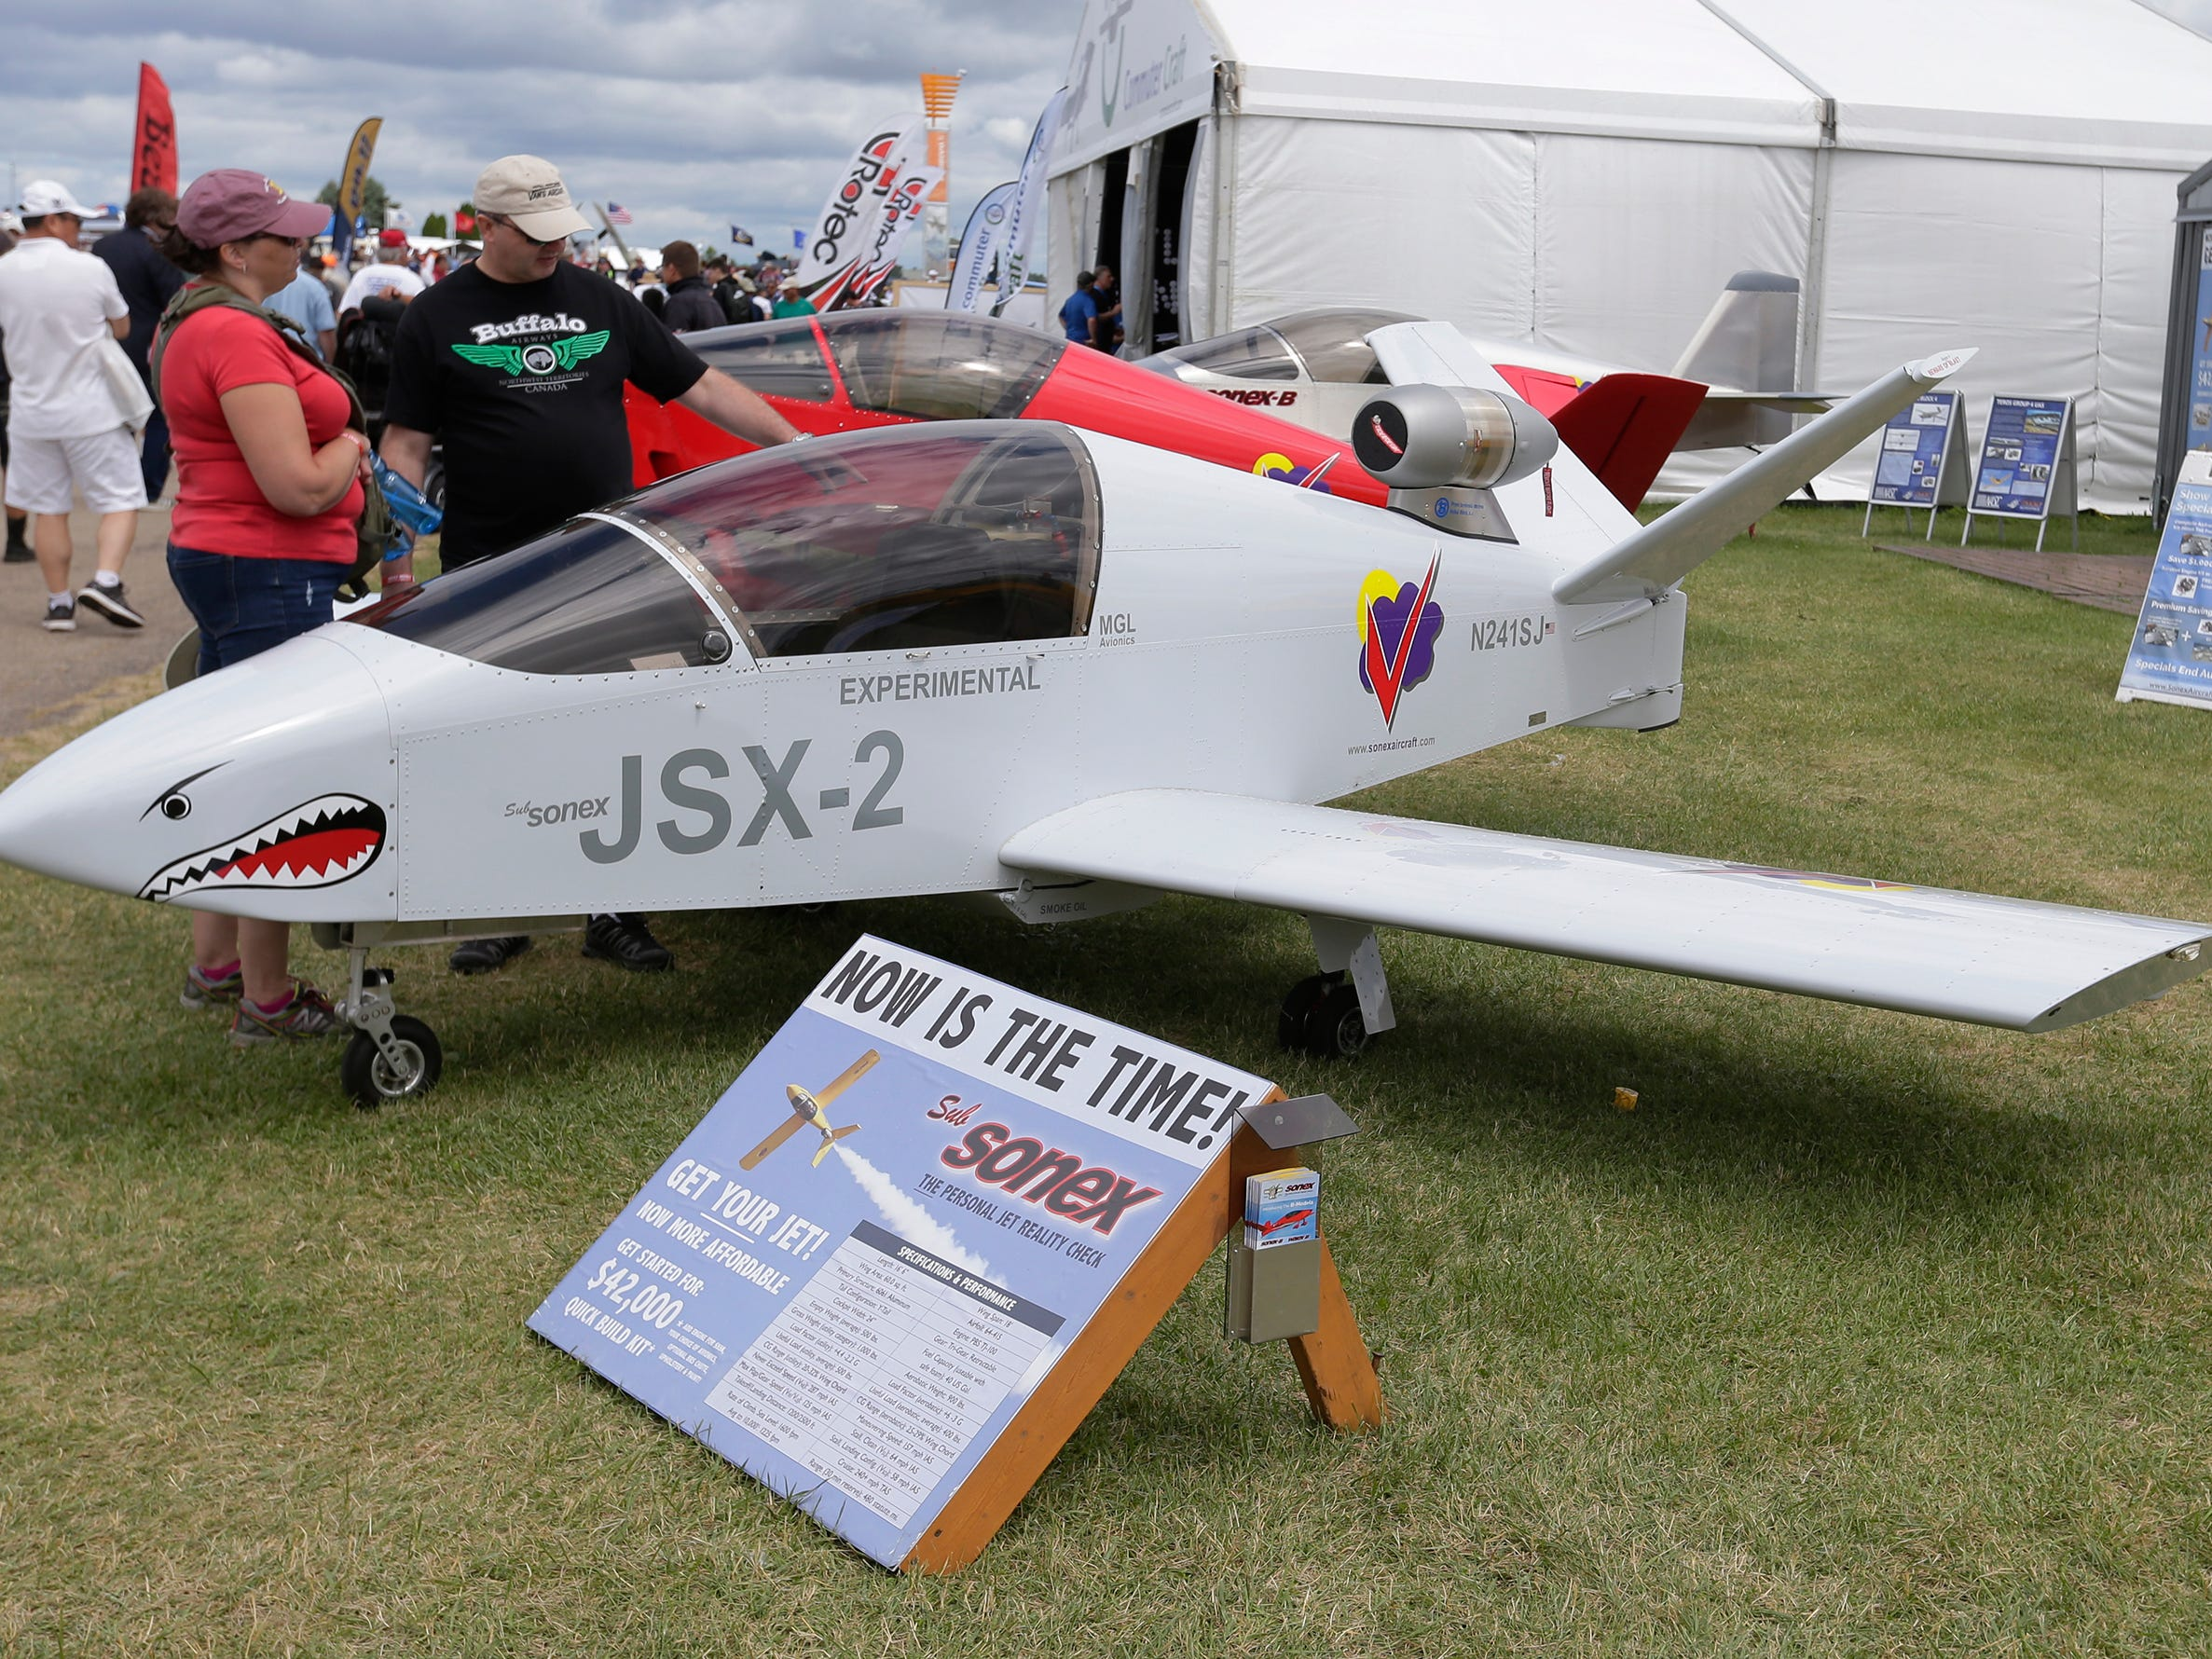 Sonex celebrates 20 years of their line of Sonex planes, based in Oshkosh they produce kit planes with either a jet engine or an aircraft engine, Thursday, July 26, 2018, in Oshkosh, Wis.  The 66th annual Experimental Aircraft Association Fly-In Convention, AirVenture 2018 draws over 500,000 people and over 10,000 planes from more than 70 nations annually to the area.  The convention runs through July 29.Joe Sienkiewicz/USA Today NETWORK-Wisconsin